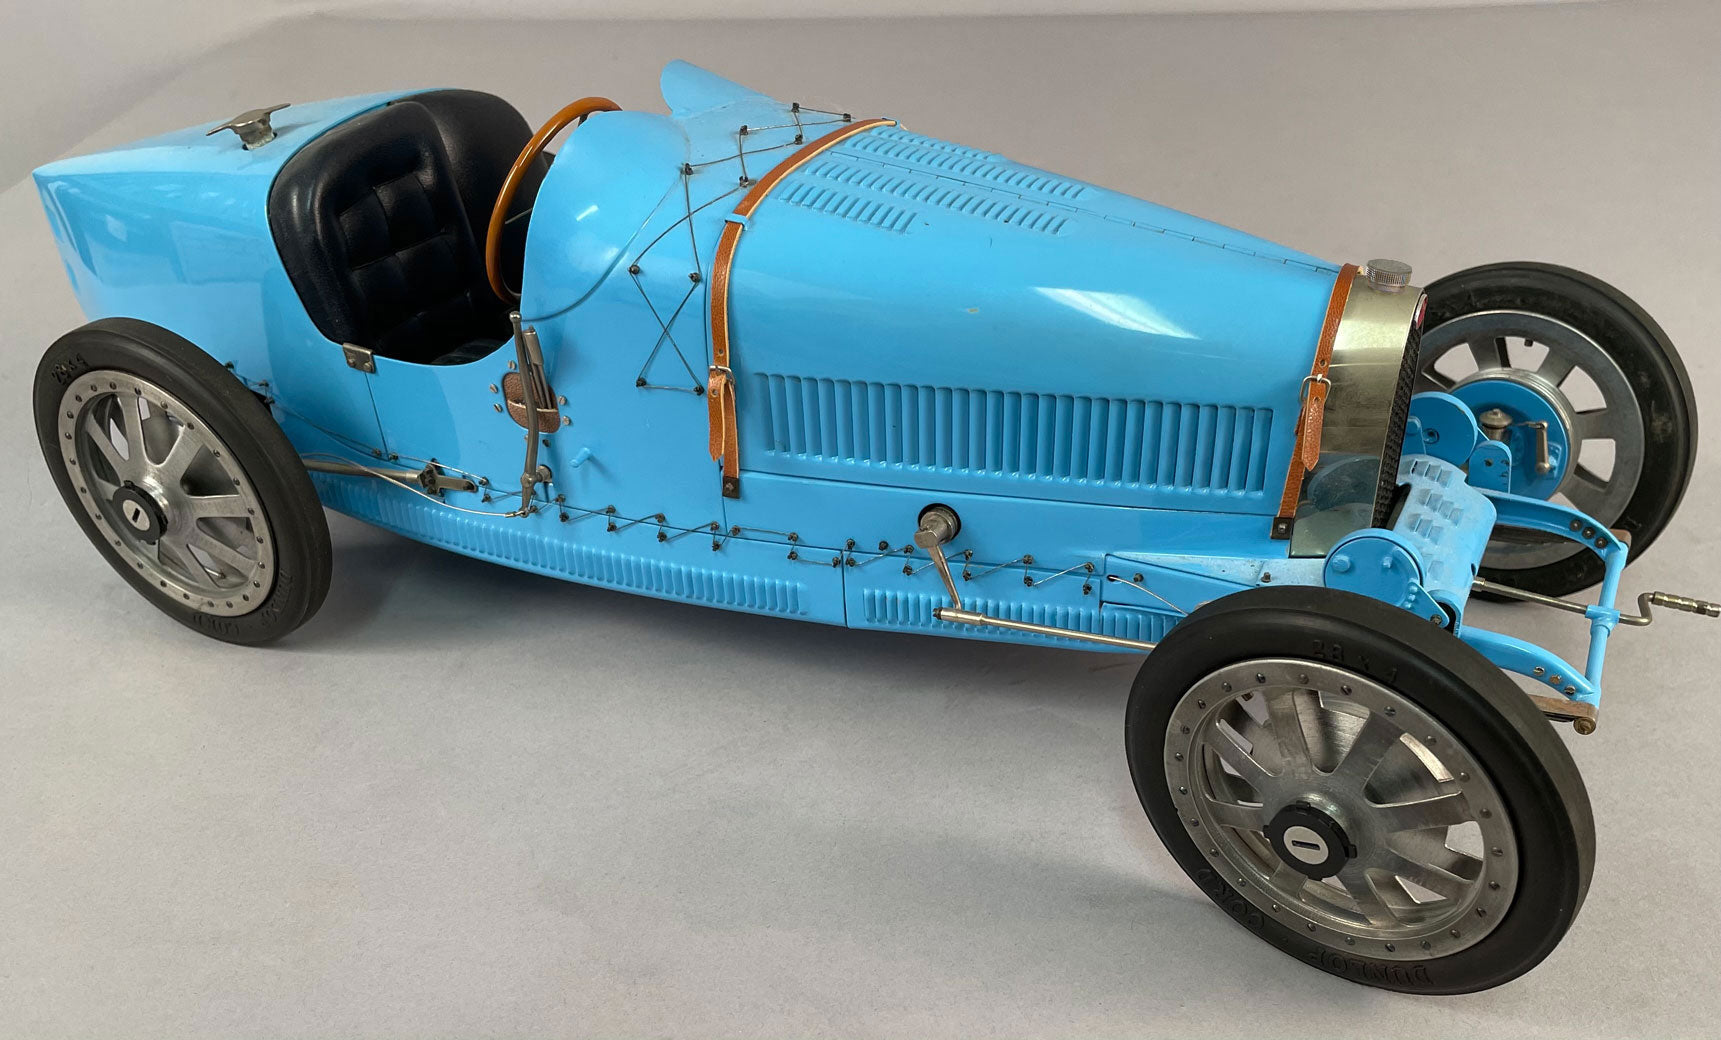 Bugatti T35 model by Art Collection/Fontenelle, 1/8 scale